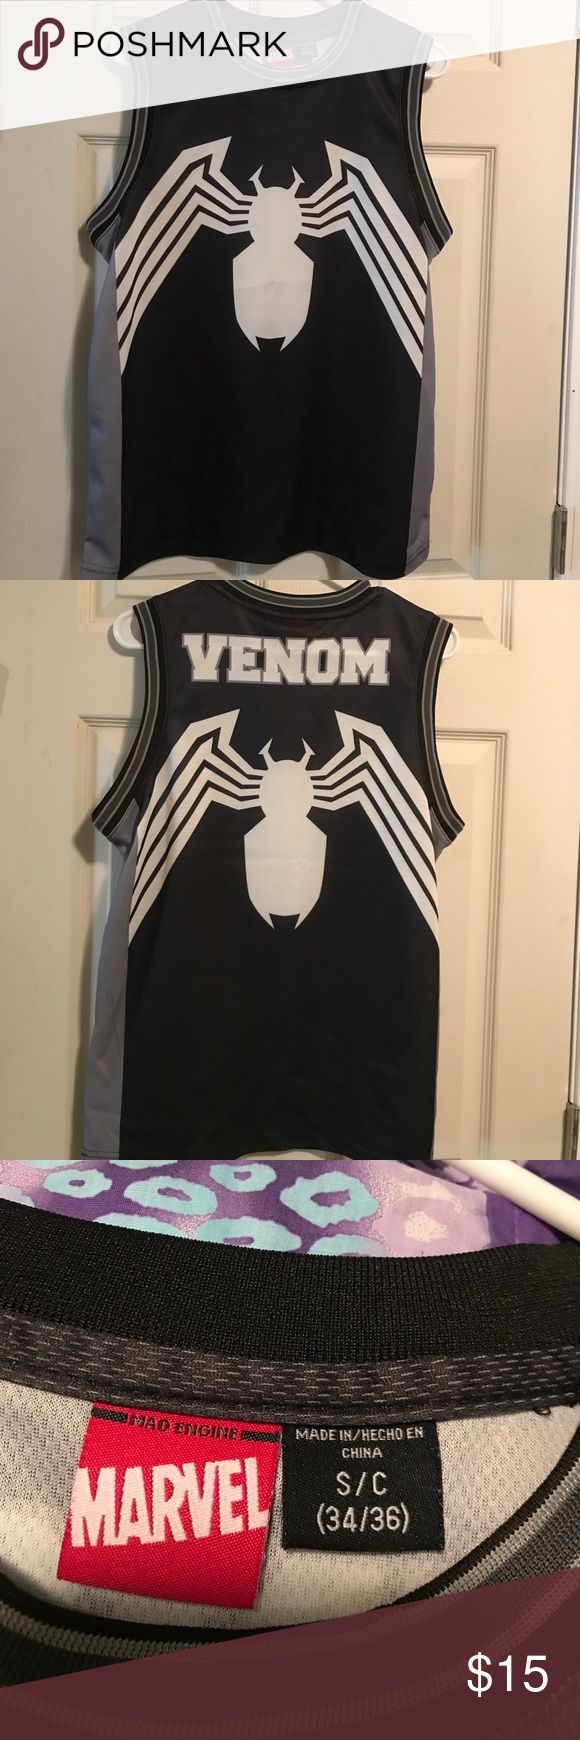 Marvel Venom shirt Black and white with the spider on front and back, perfect condition bought for my son and he got to wear it once before he outgrew it! Marvel Shirts Tank Tops